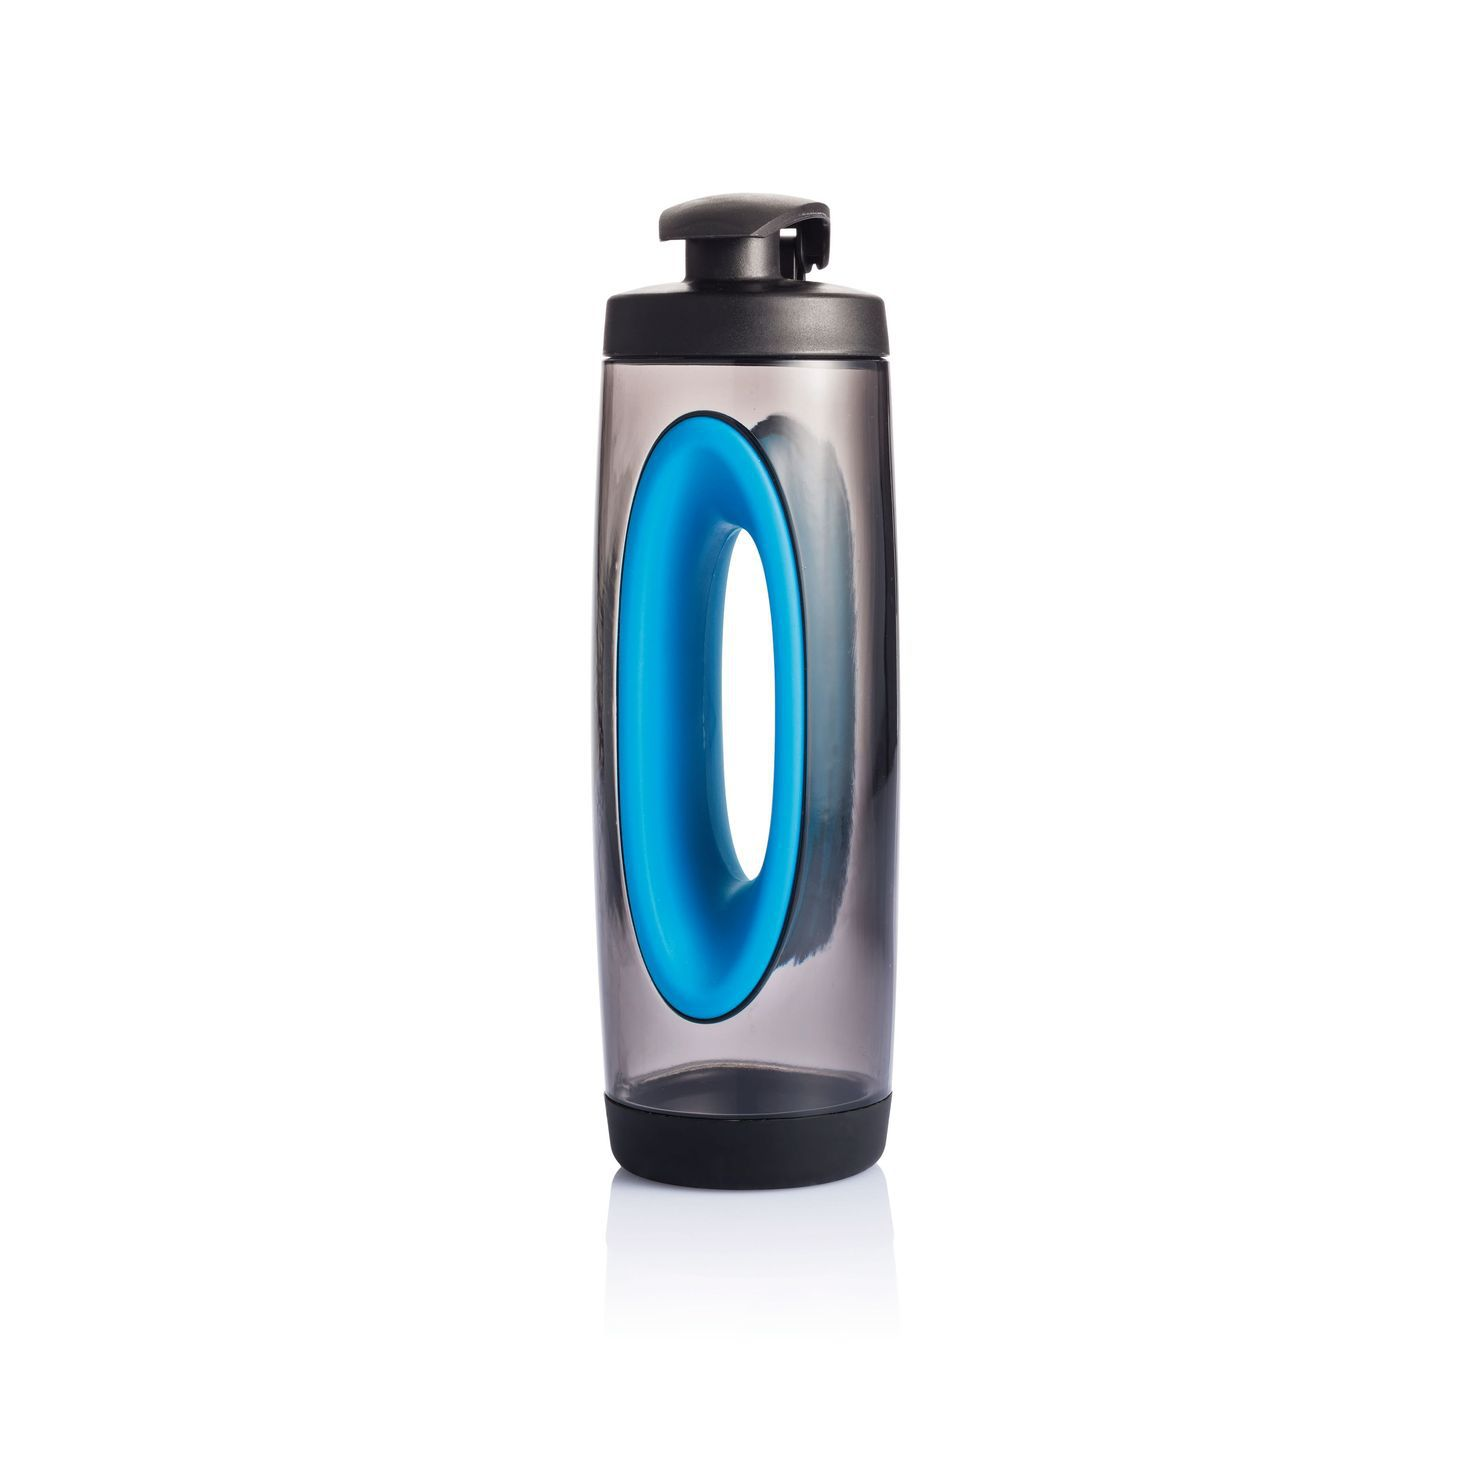 Blauwe Sportfles | Iconisch model | 550 ml